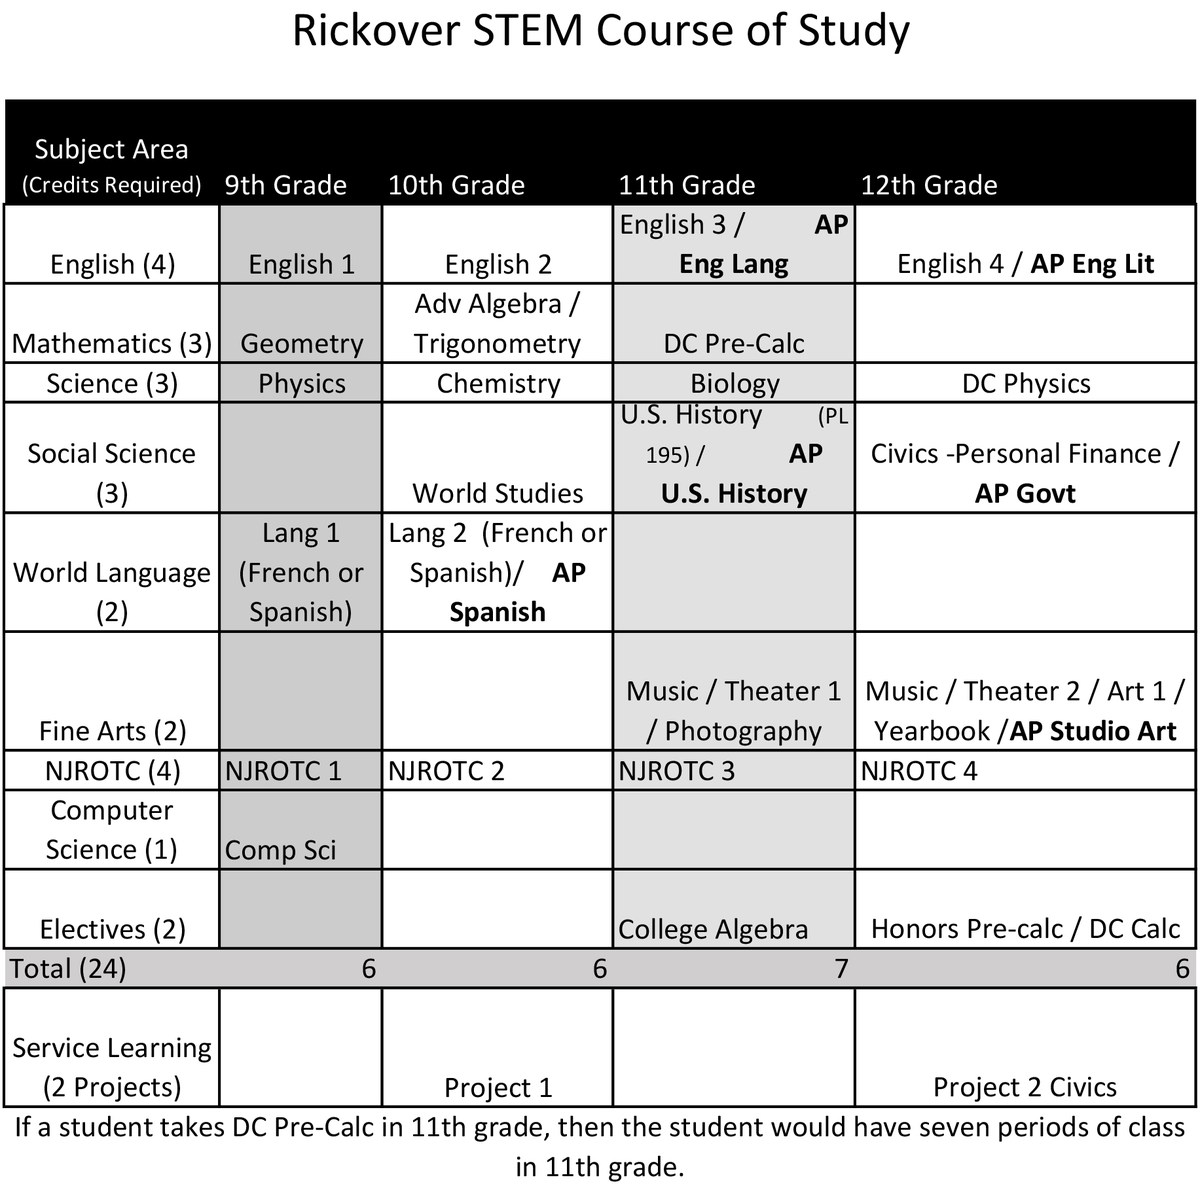 STEM Course of Study